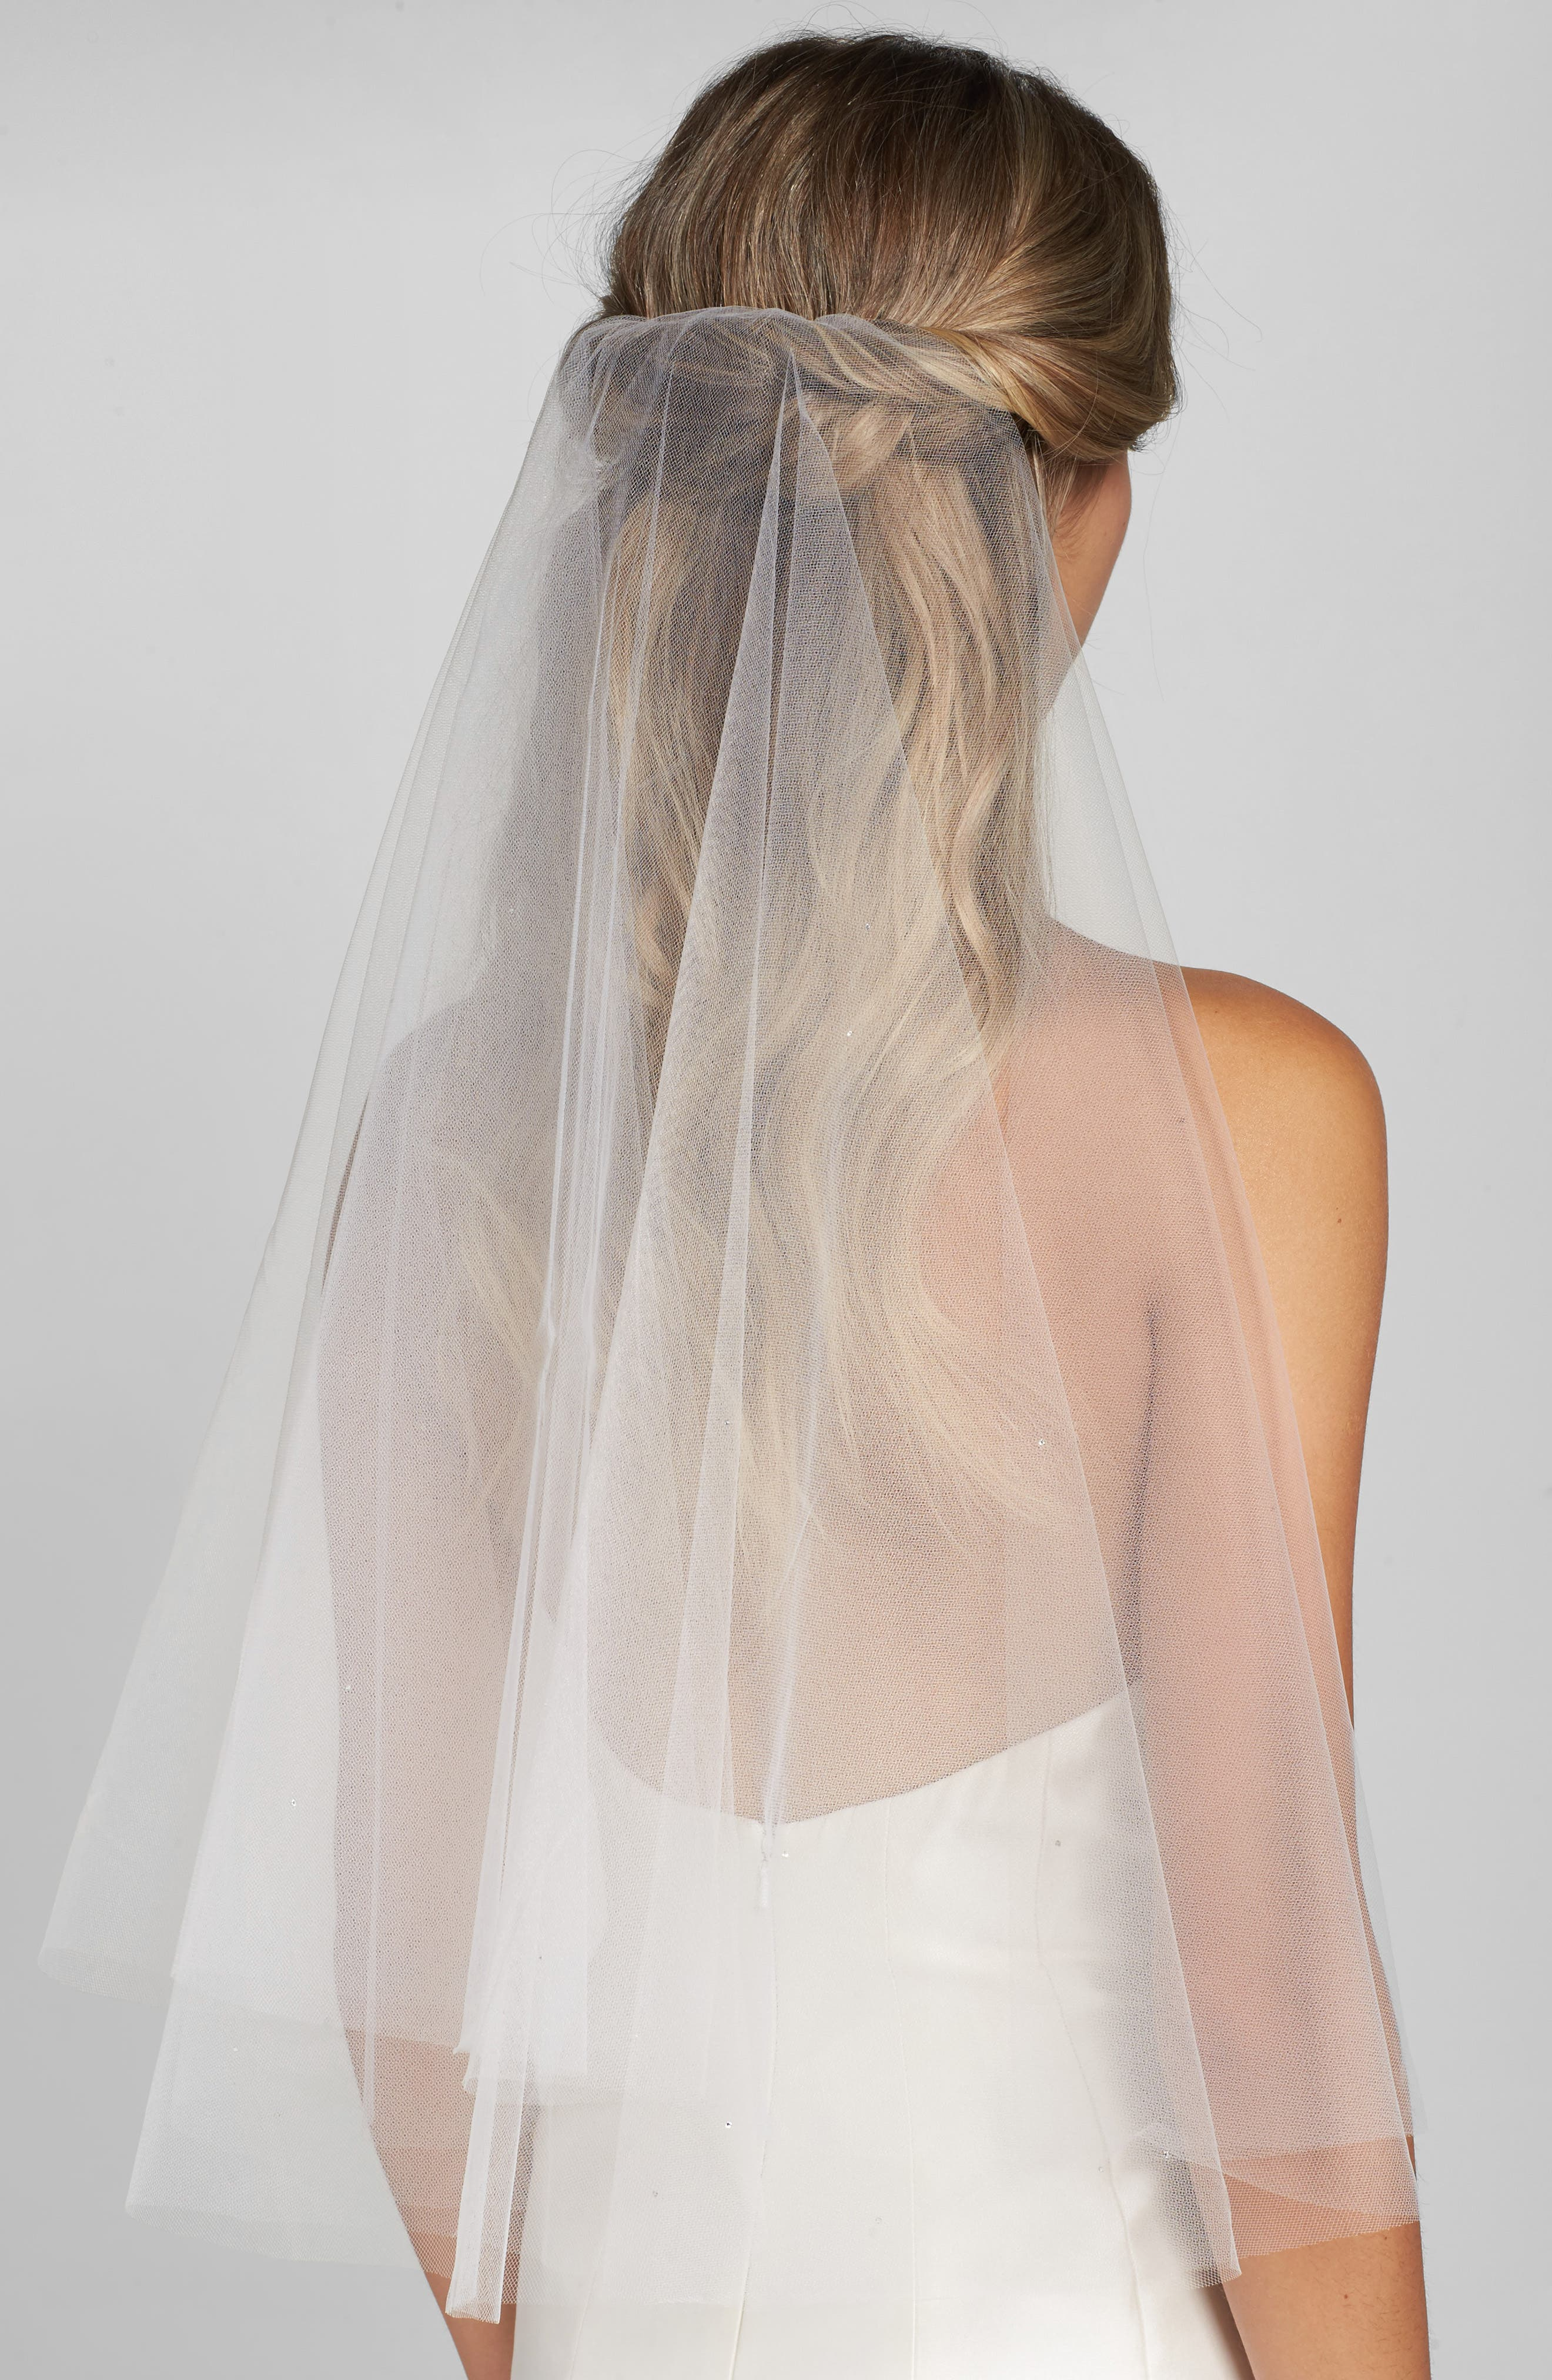 'Madeline - Crystal' Two Tier Veil,                             Main thumbnail 1, color,